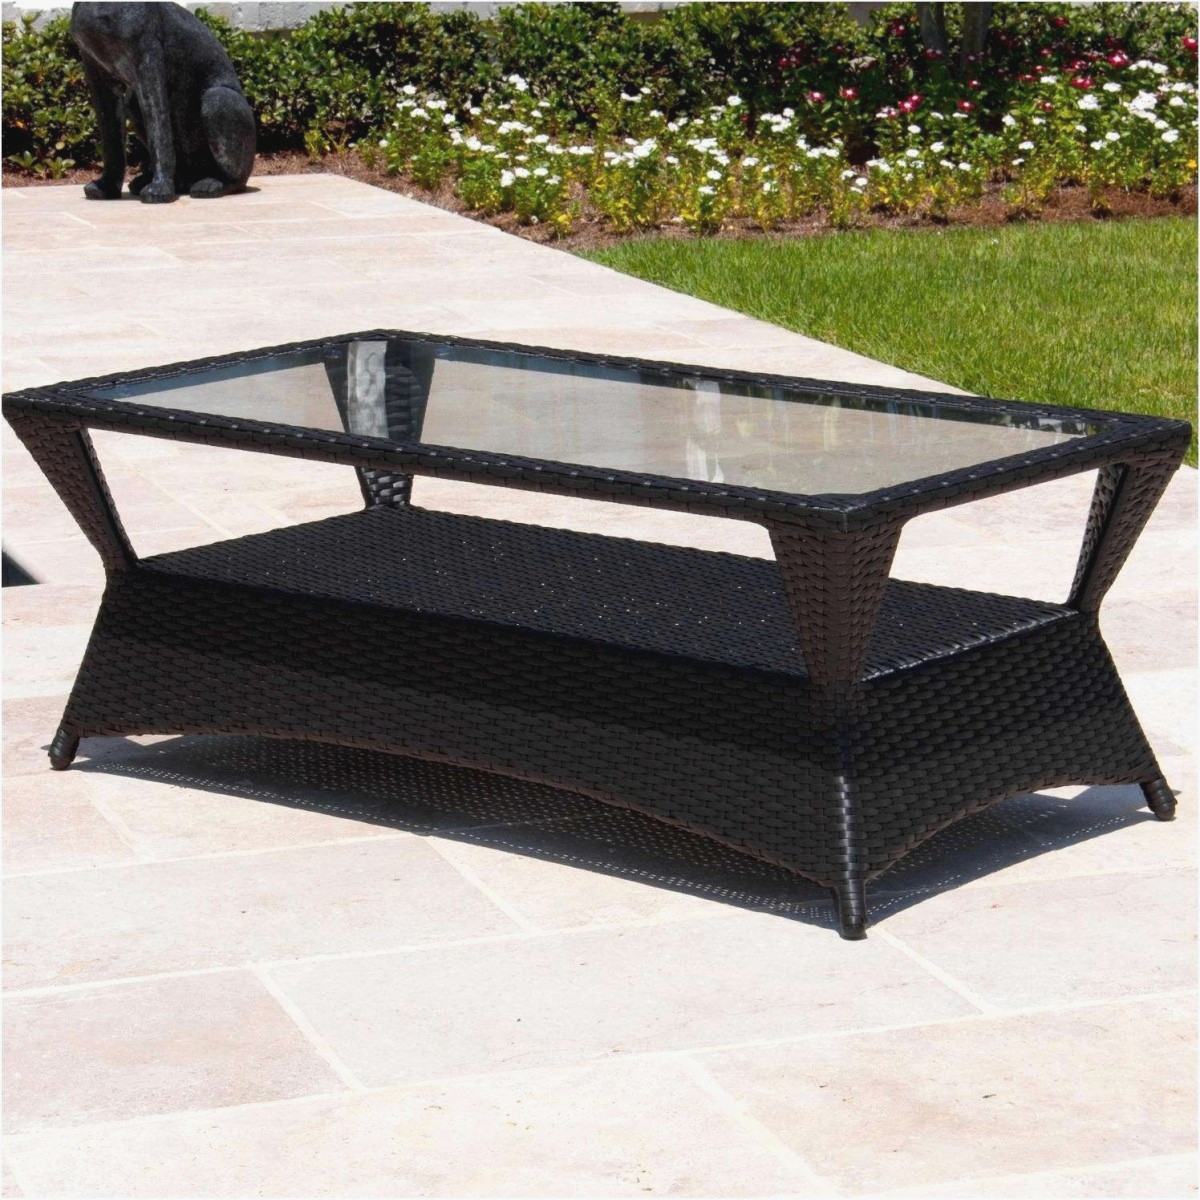 new modern outdoor side table collection gallery best coffee patio tables awesome garden zee high top set wine cabinet round mats imitation furniture sliding barn closet doors